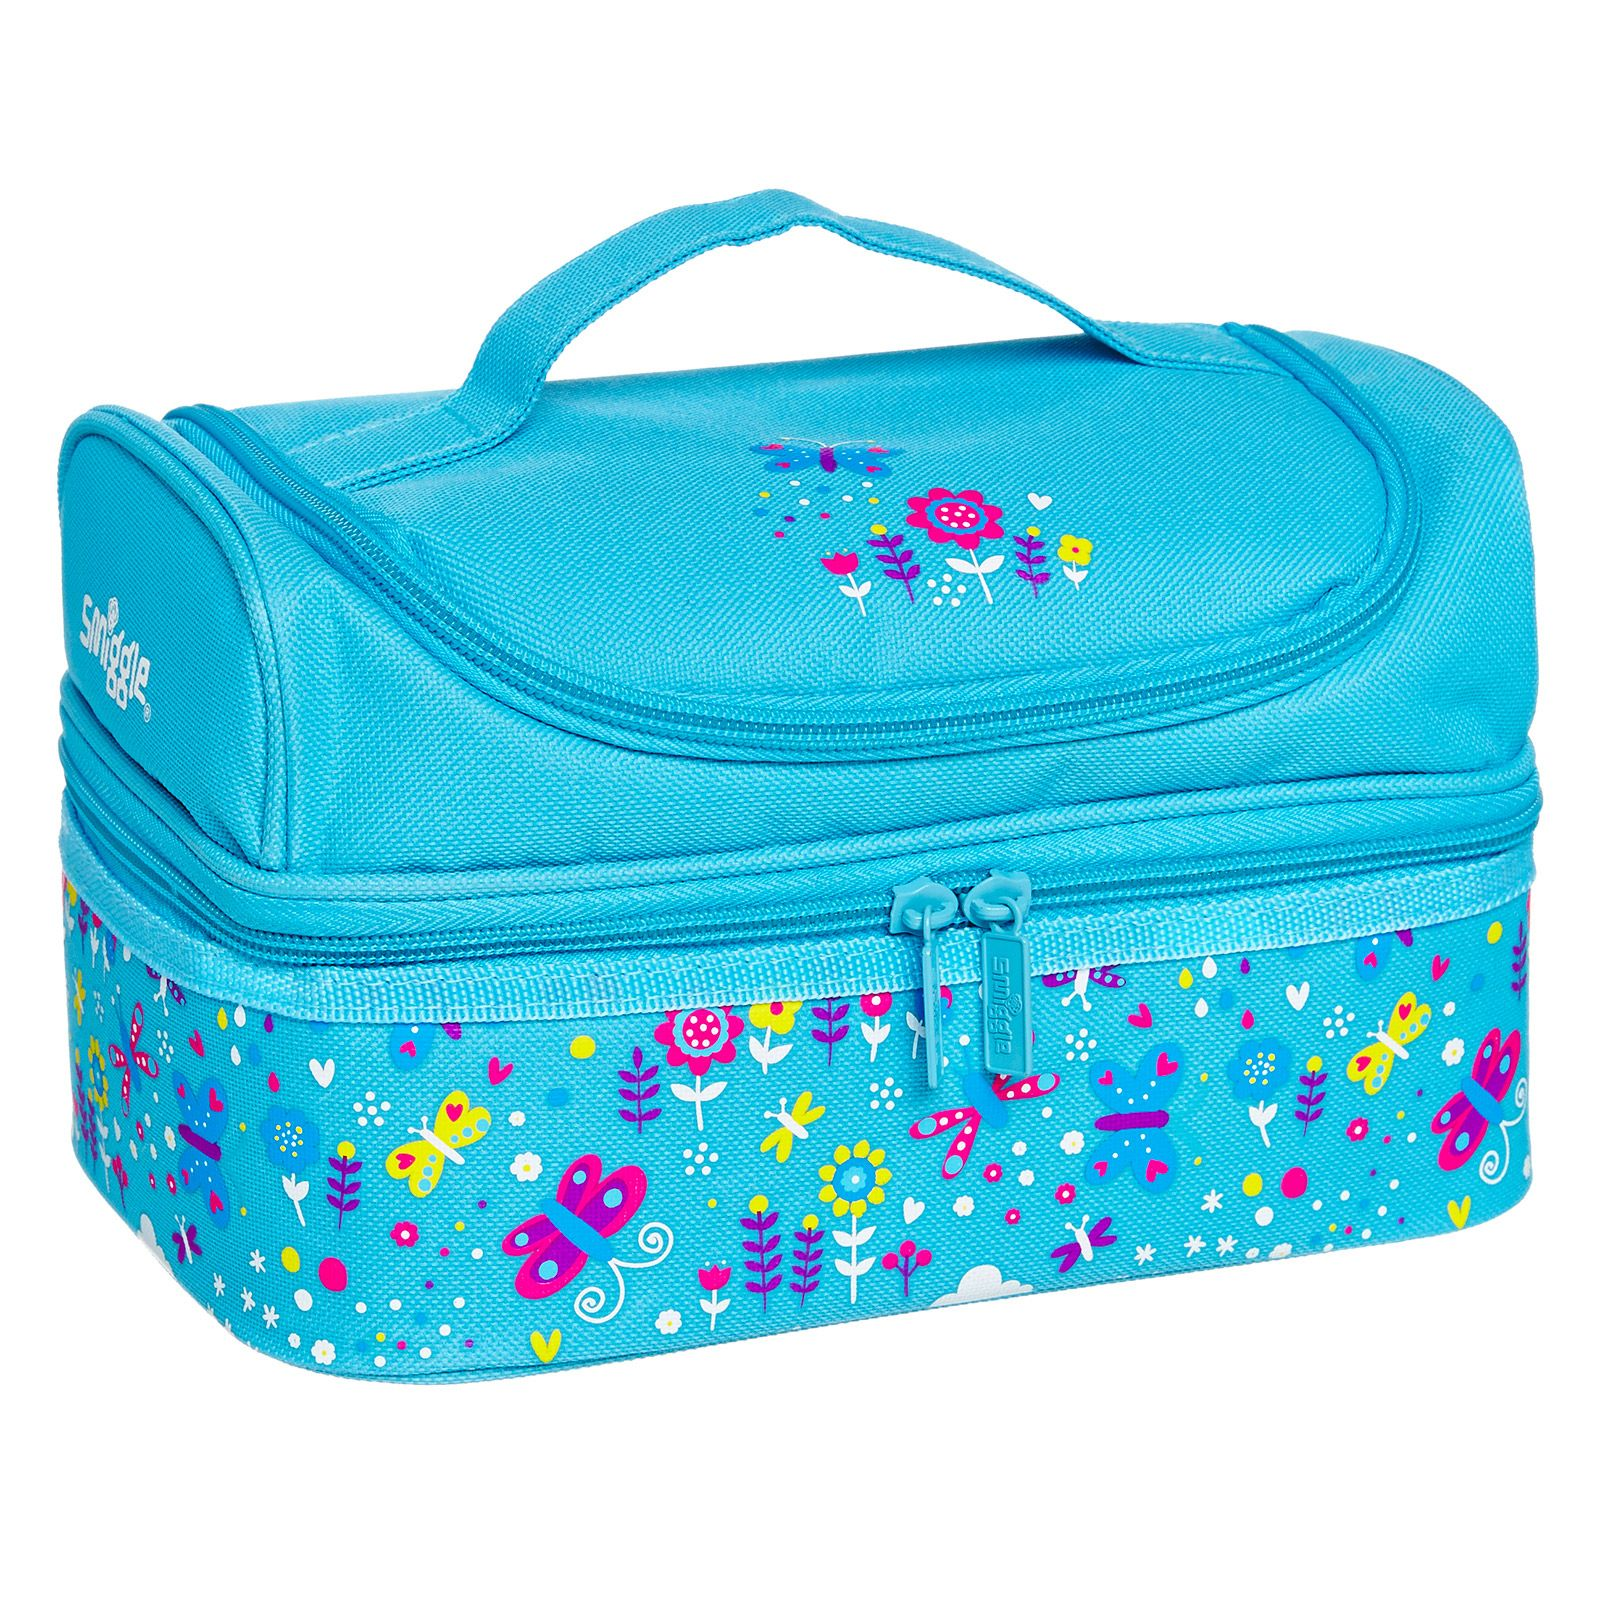 Pop Double Decker Lunchbox Smiggle Bags Lunch Box